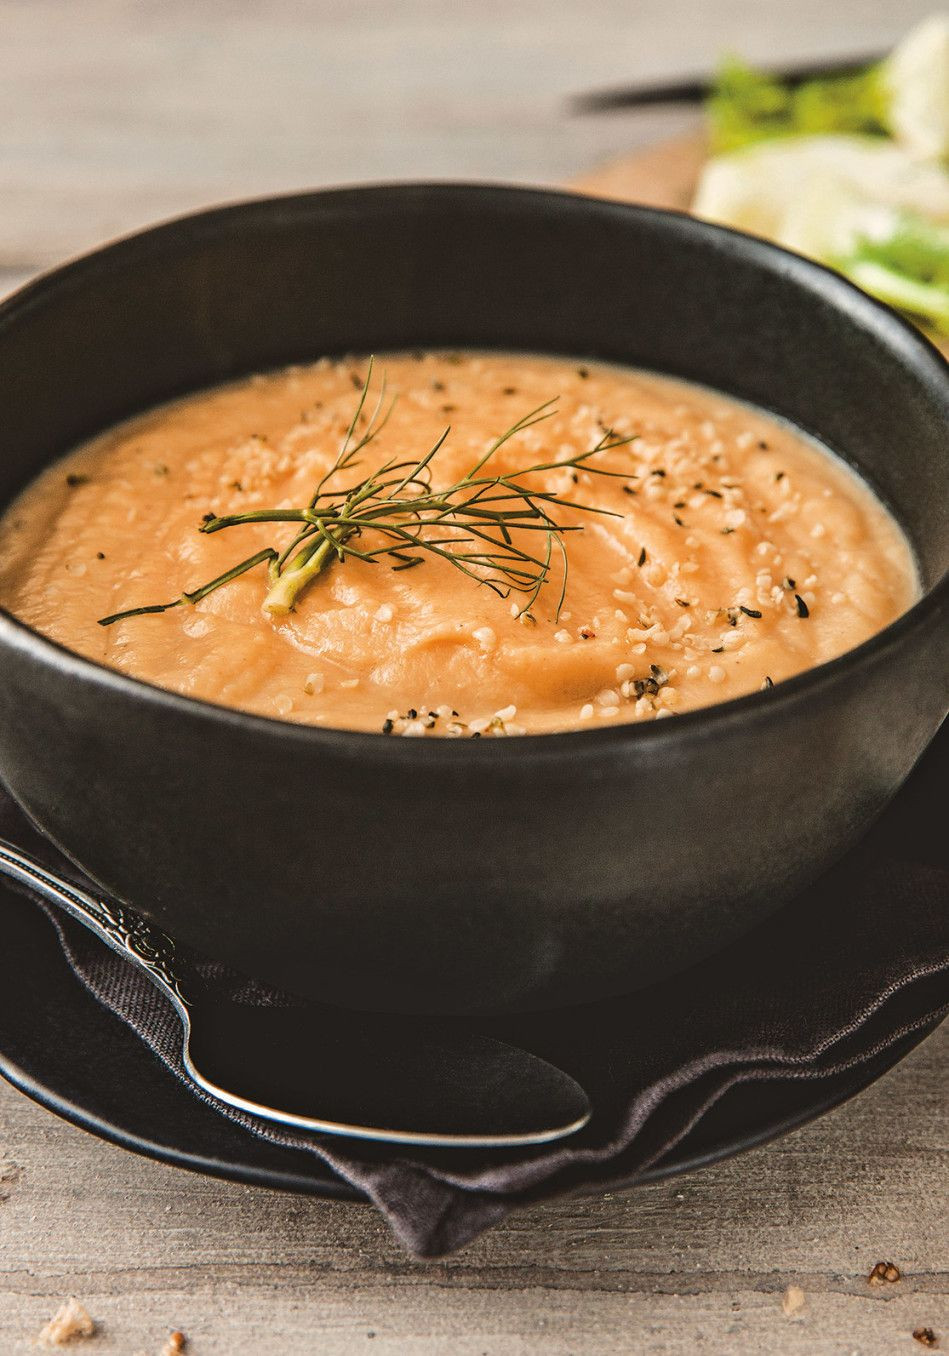 Healthy Soups To Make  Healthy Soups You Can Make in a Crock Pot